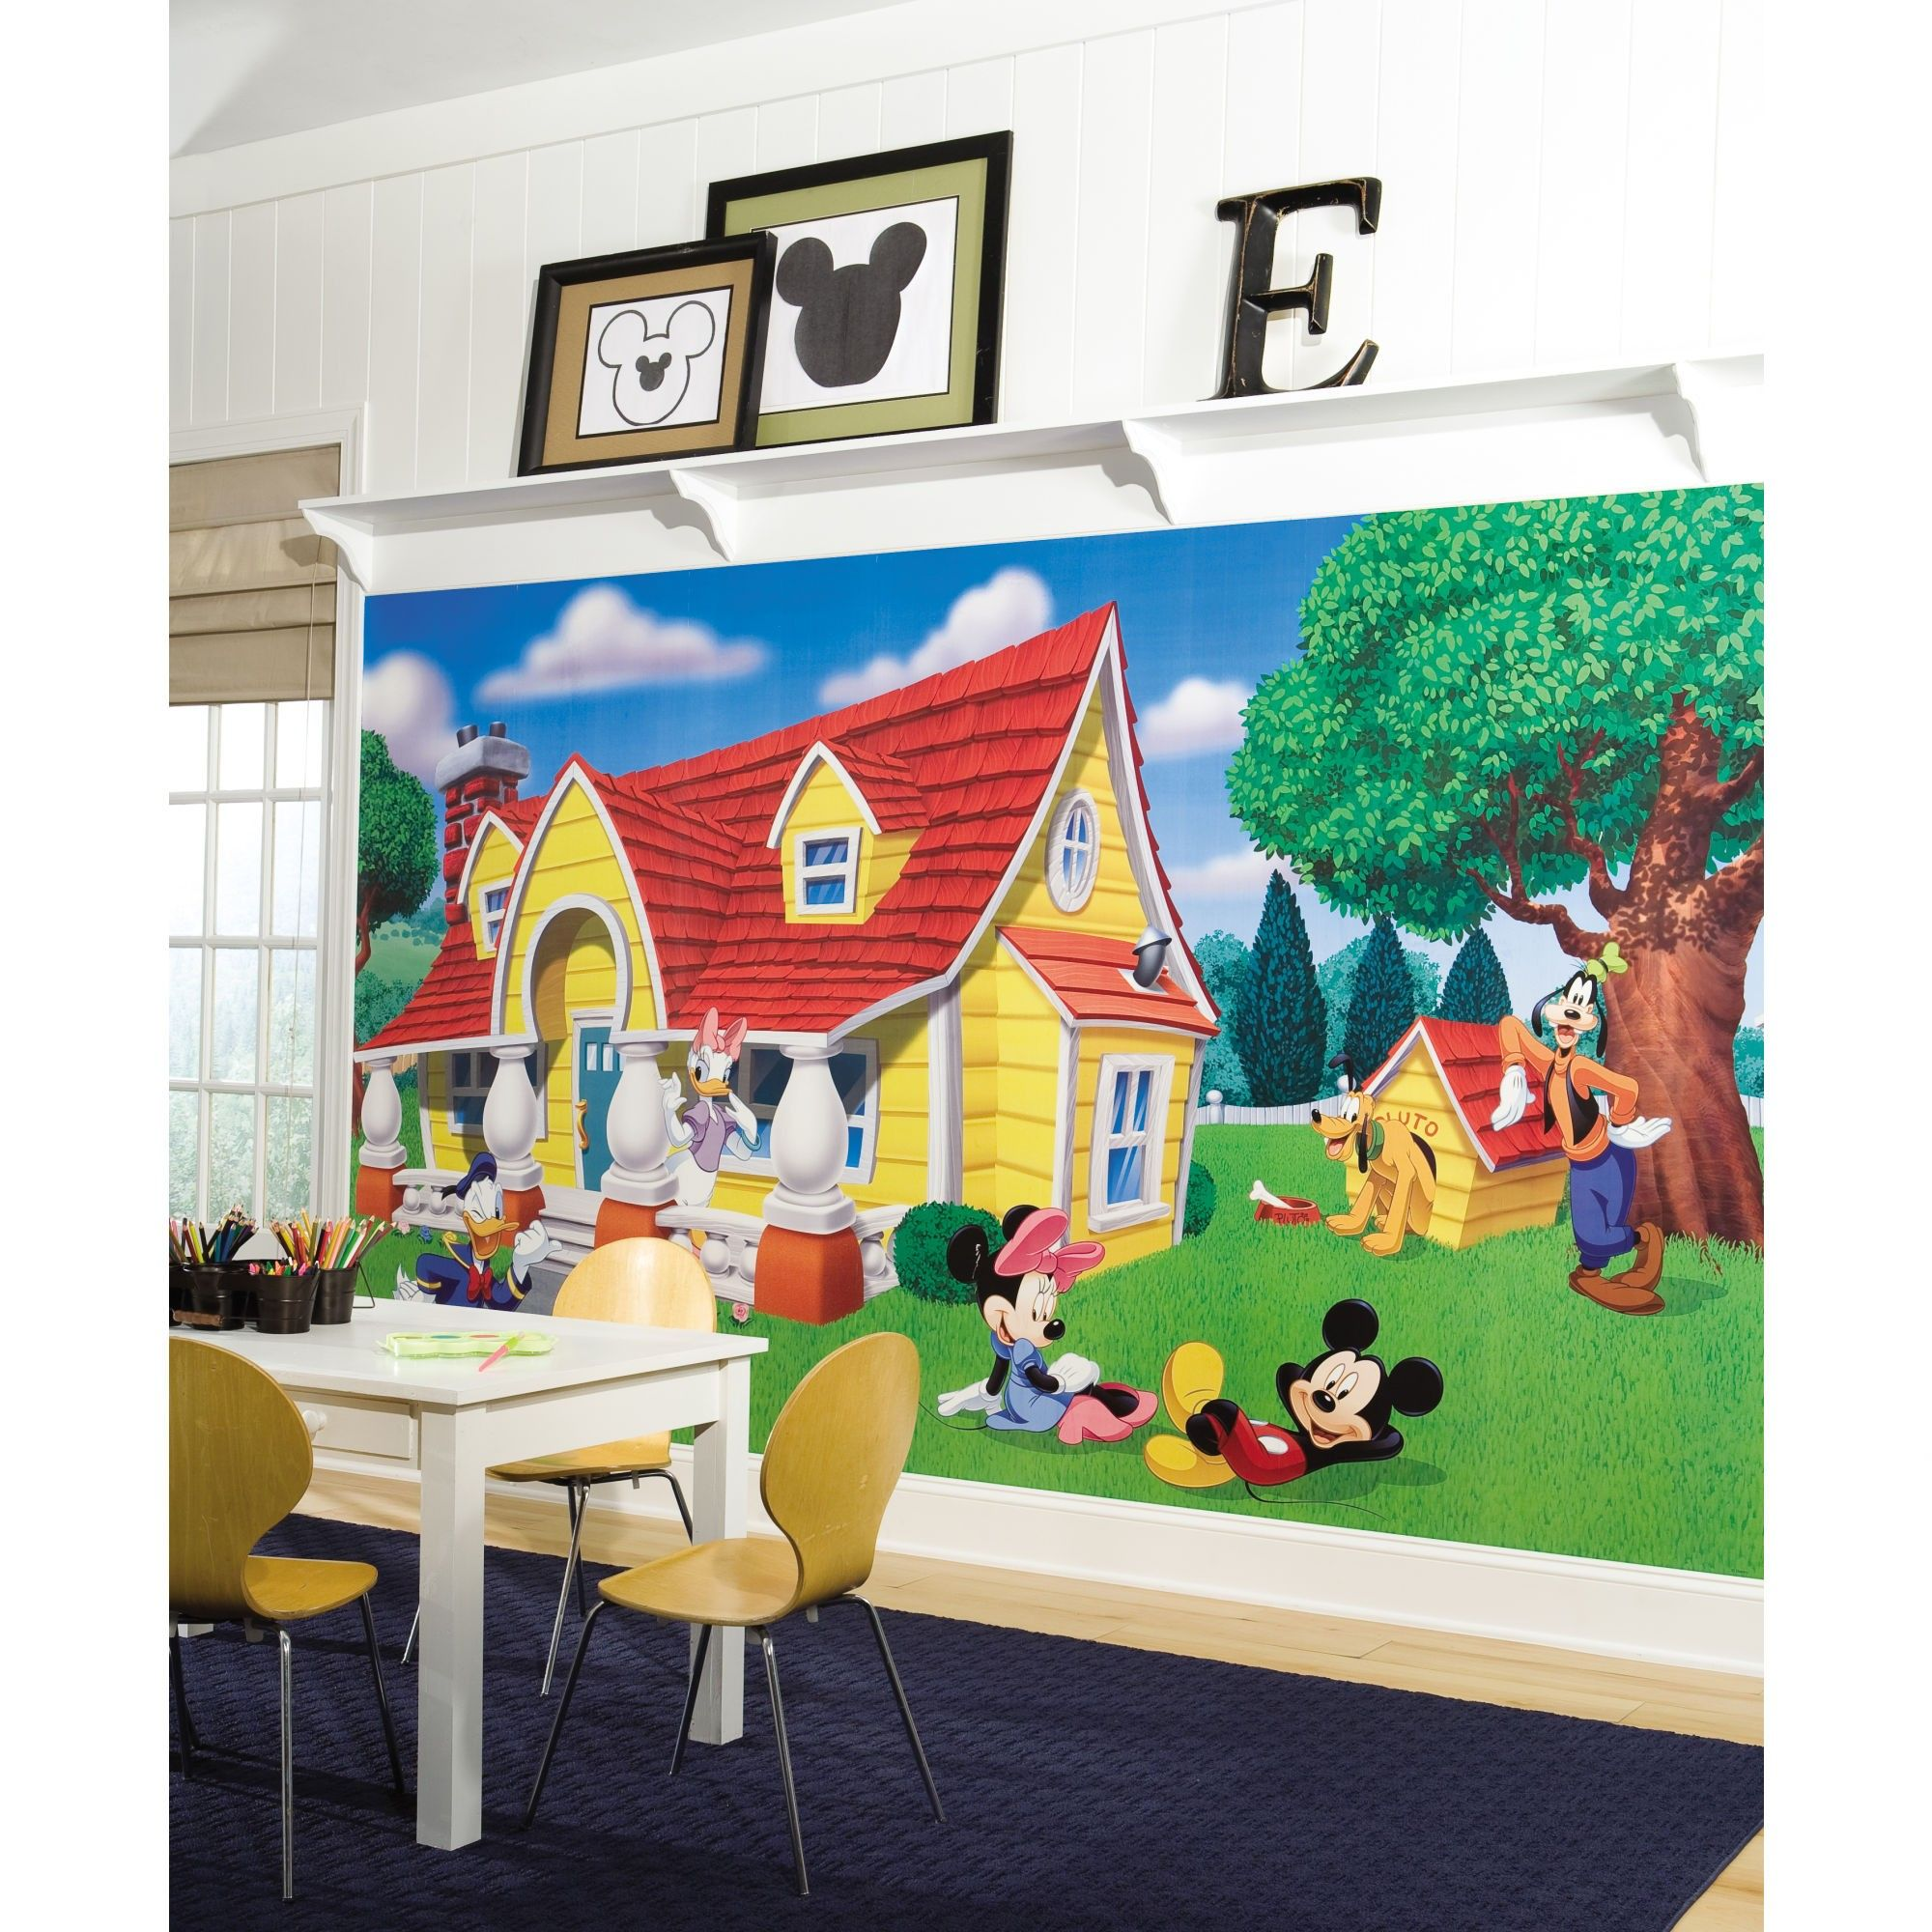 17 Best images about Mickey Mouse playroom on Pinterest   Disney, Mickey  mouse wall decals and Kids sofa